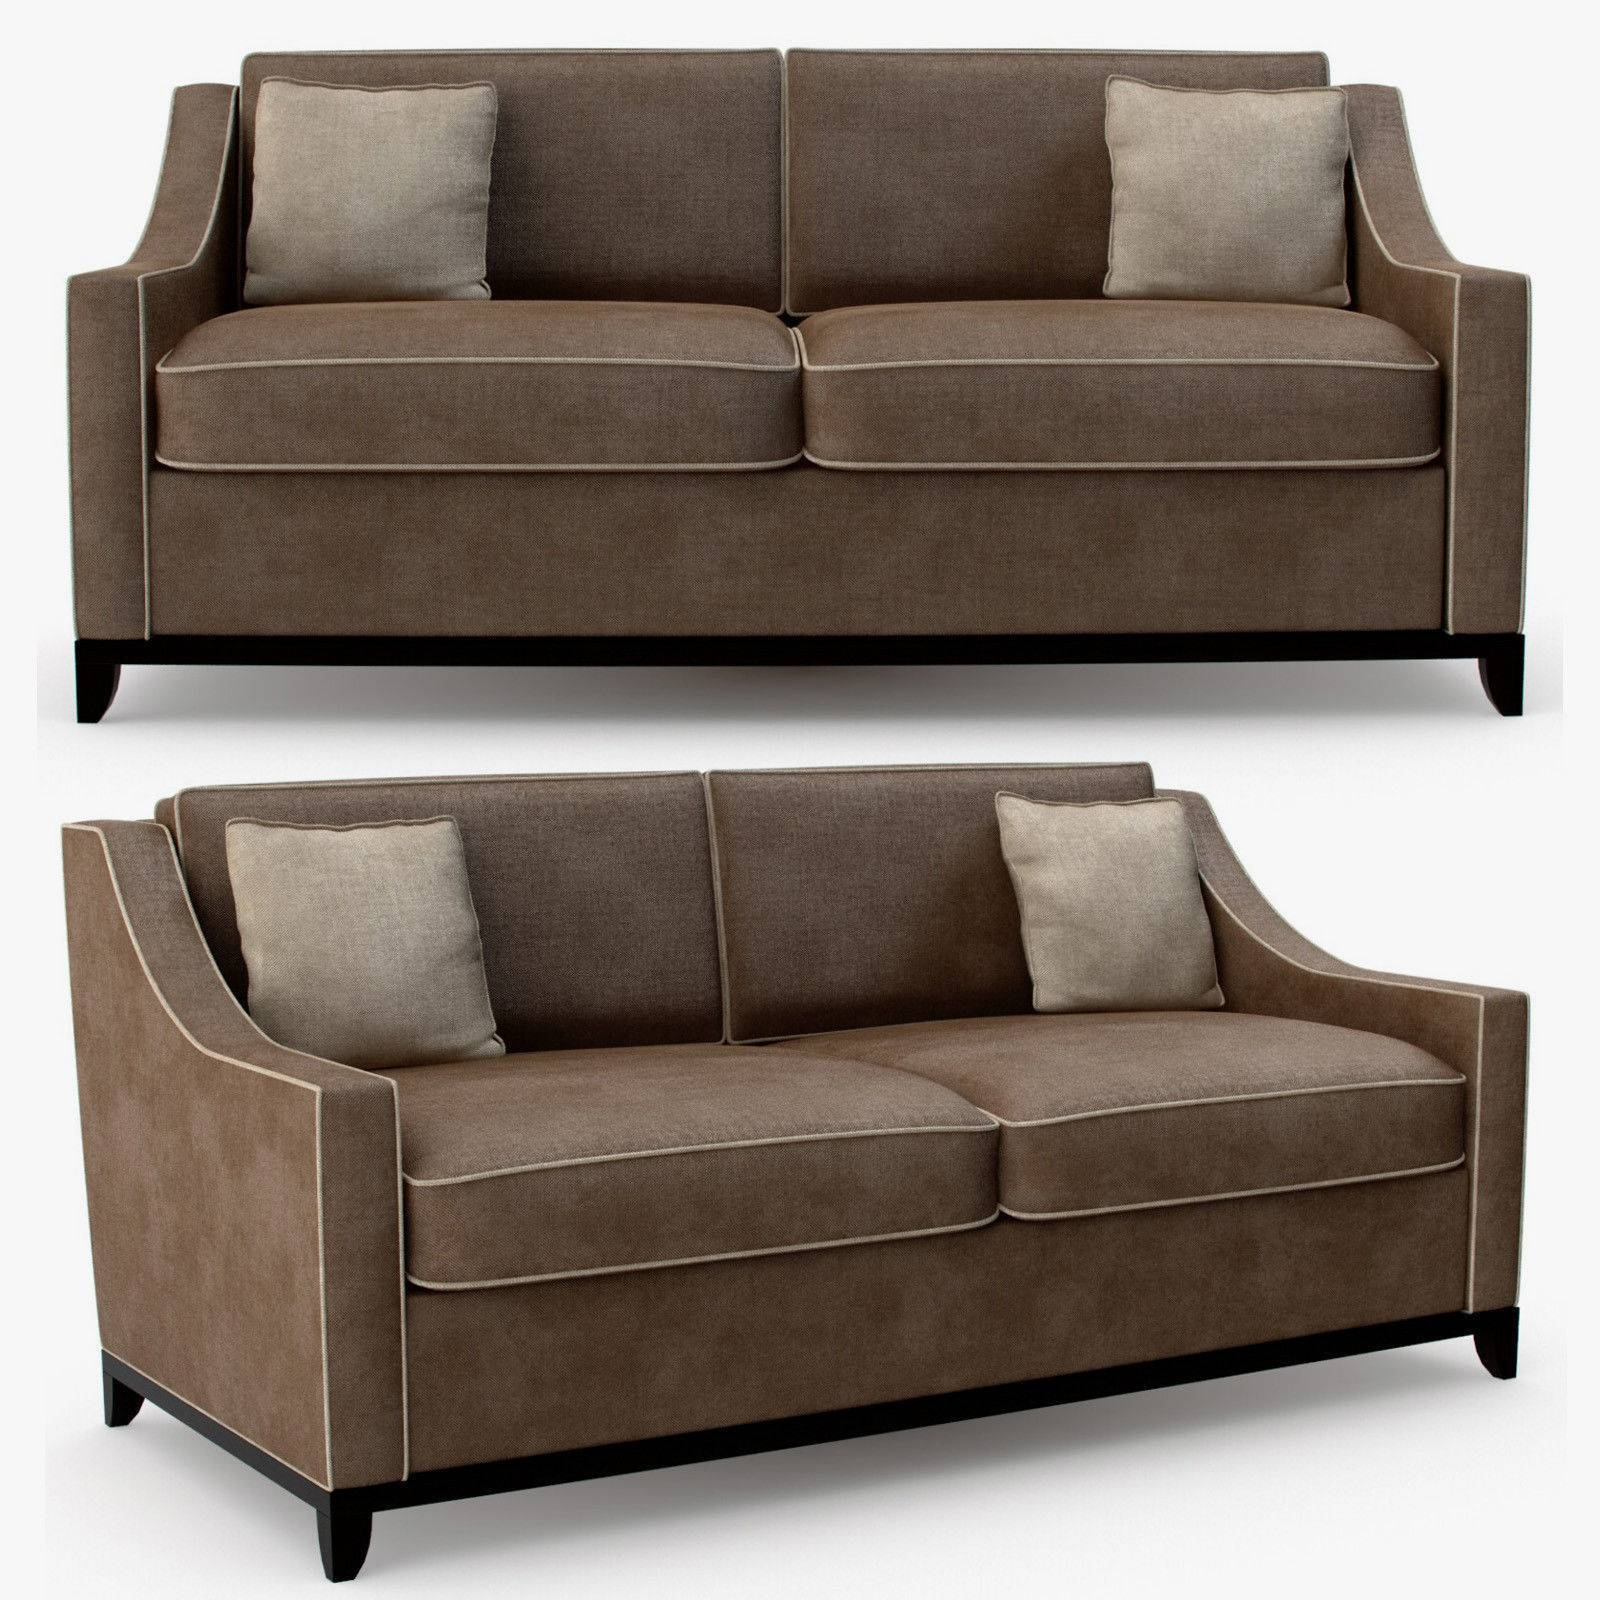 The Sofa And Chair Company - Spencer 2 Seater Sofa 3D Model Max inside 2 Seater Sofas (Image 26 of 30)